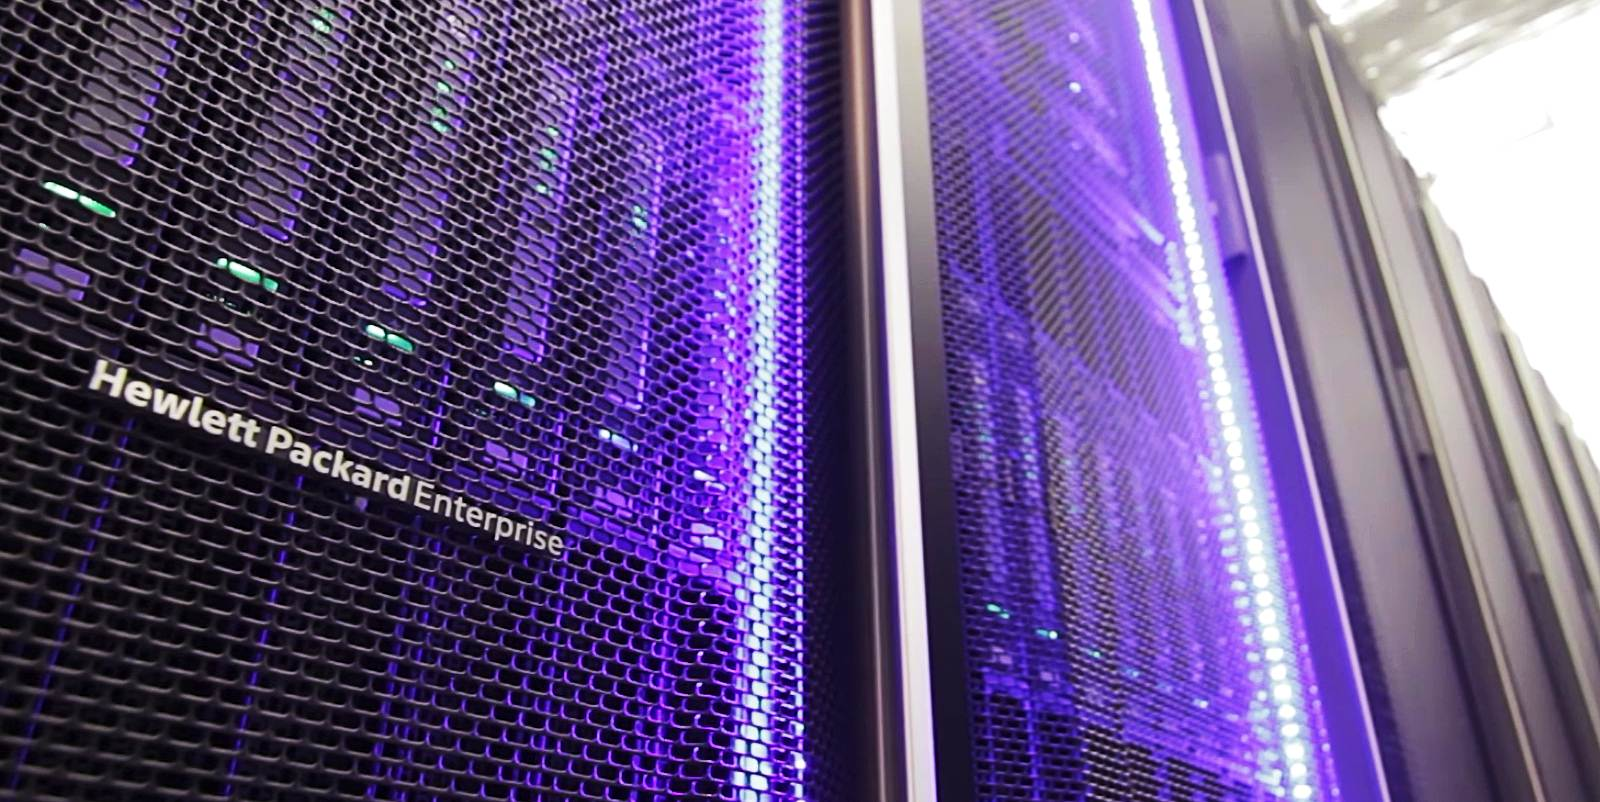 HPE discloses critical zero-day in server management software